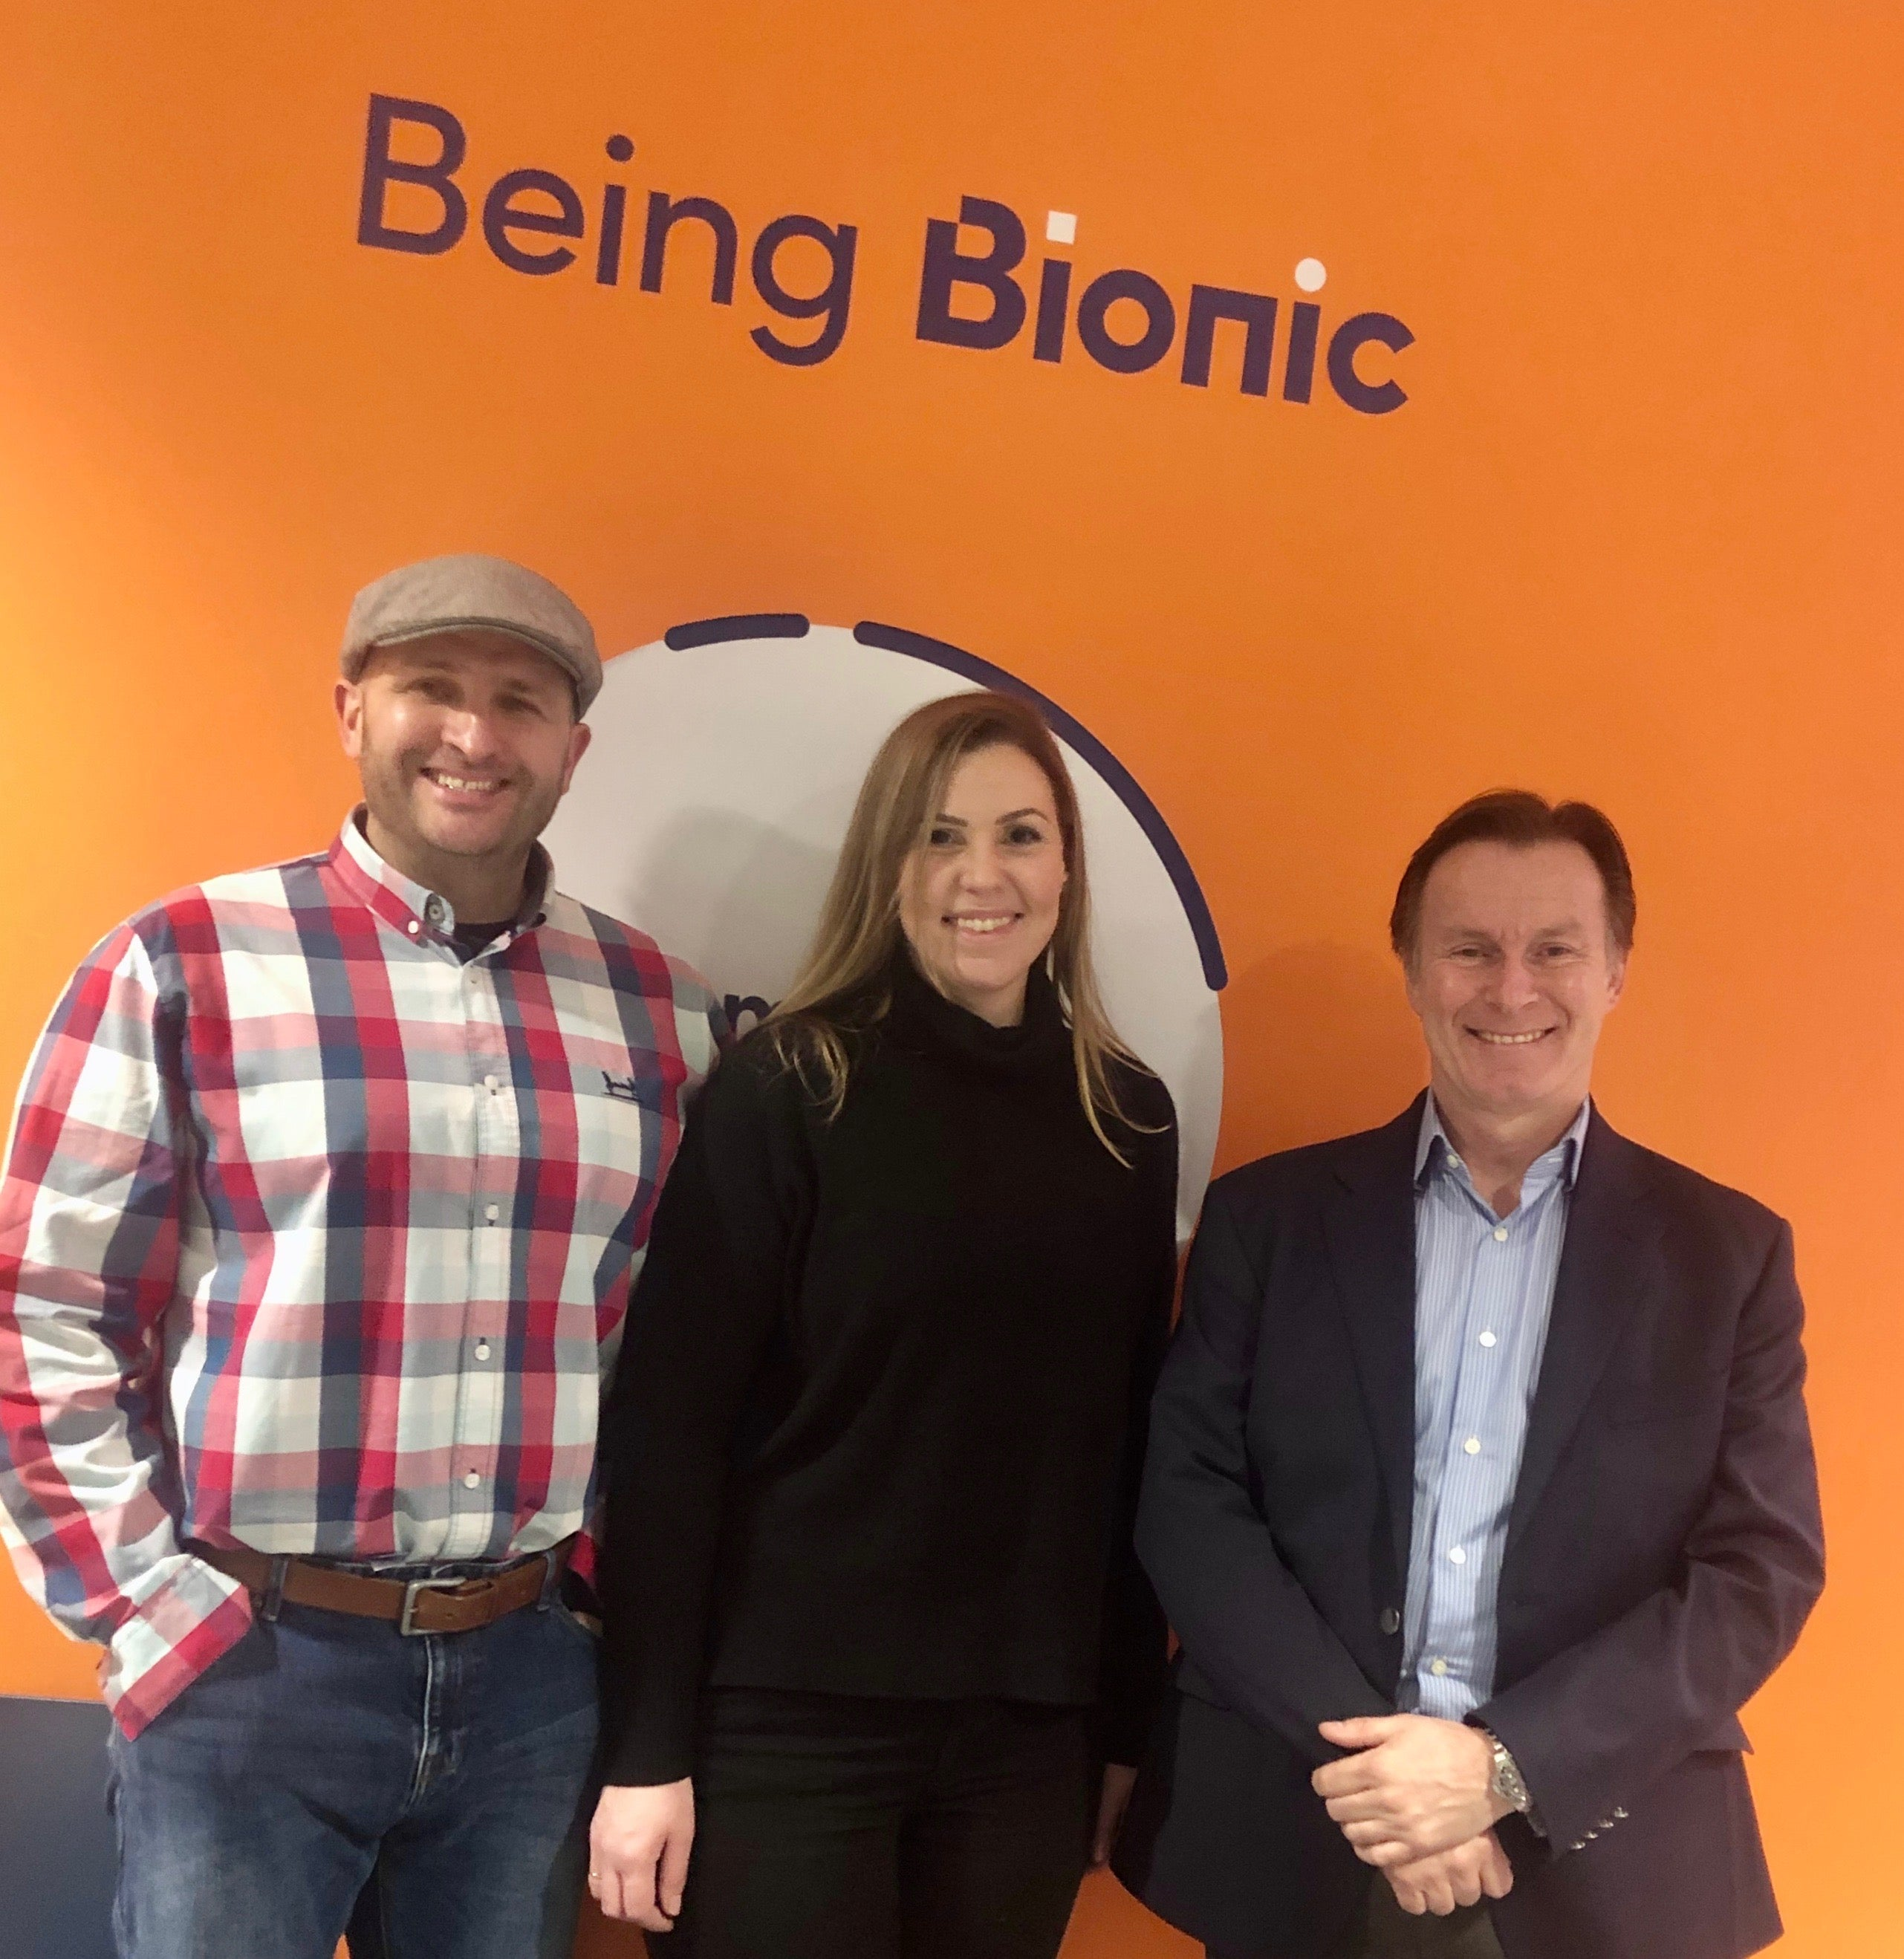 Mark and members of the Flat Cap Coffee Roasting Co. in the Bionic offices